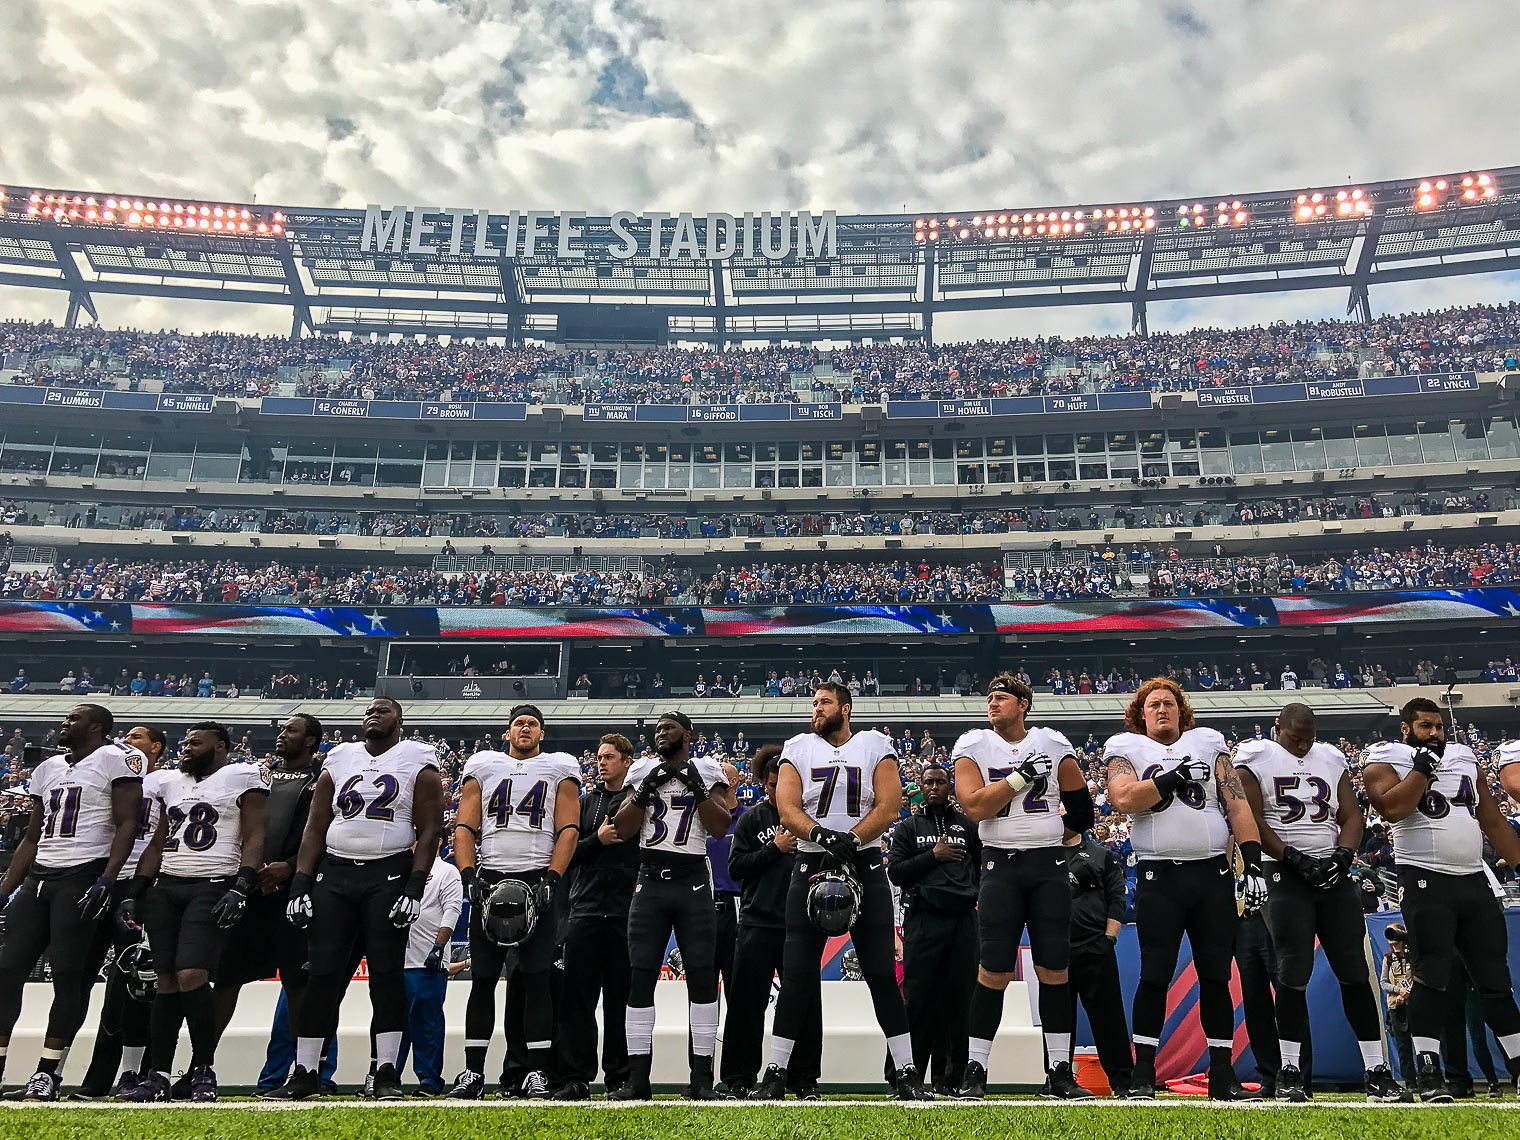 iphone12 entire NFL football game between the Baltimore Ravens and New York Giants shot using only an iPhone 7 at Metlife Stadium #shotoniphone iphone photographer NFL iphone